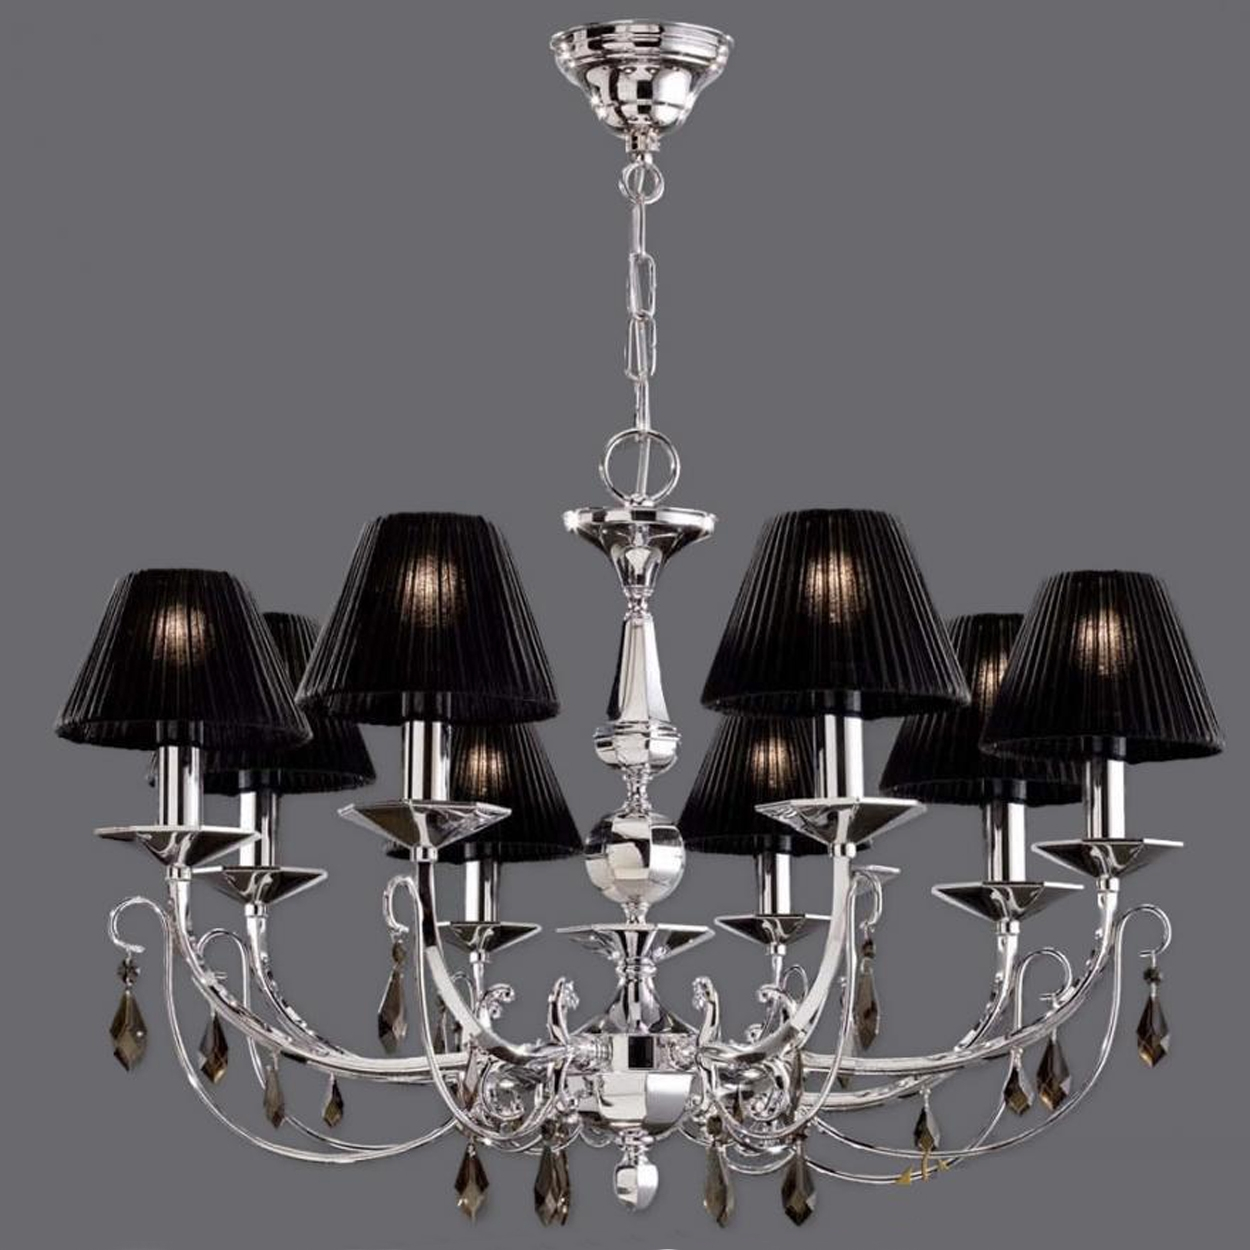 The Best Chandelier Lamp Shades Best Home Decor Inspirations Regarding Chandeliers With Lamp Shades (Image 20 of 25)